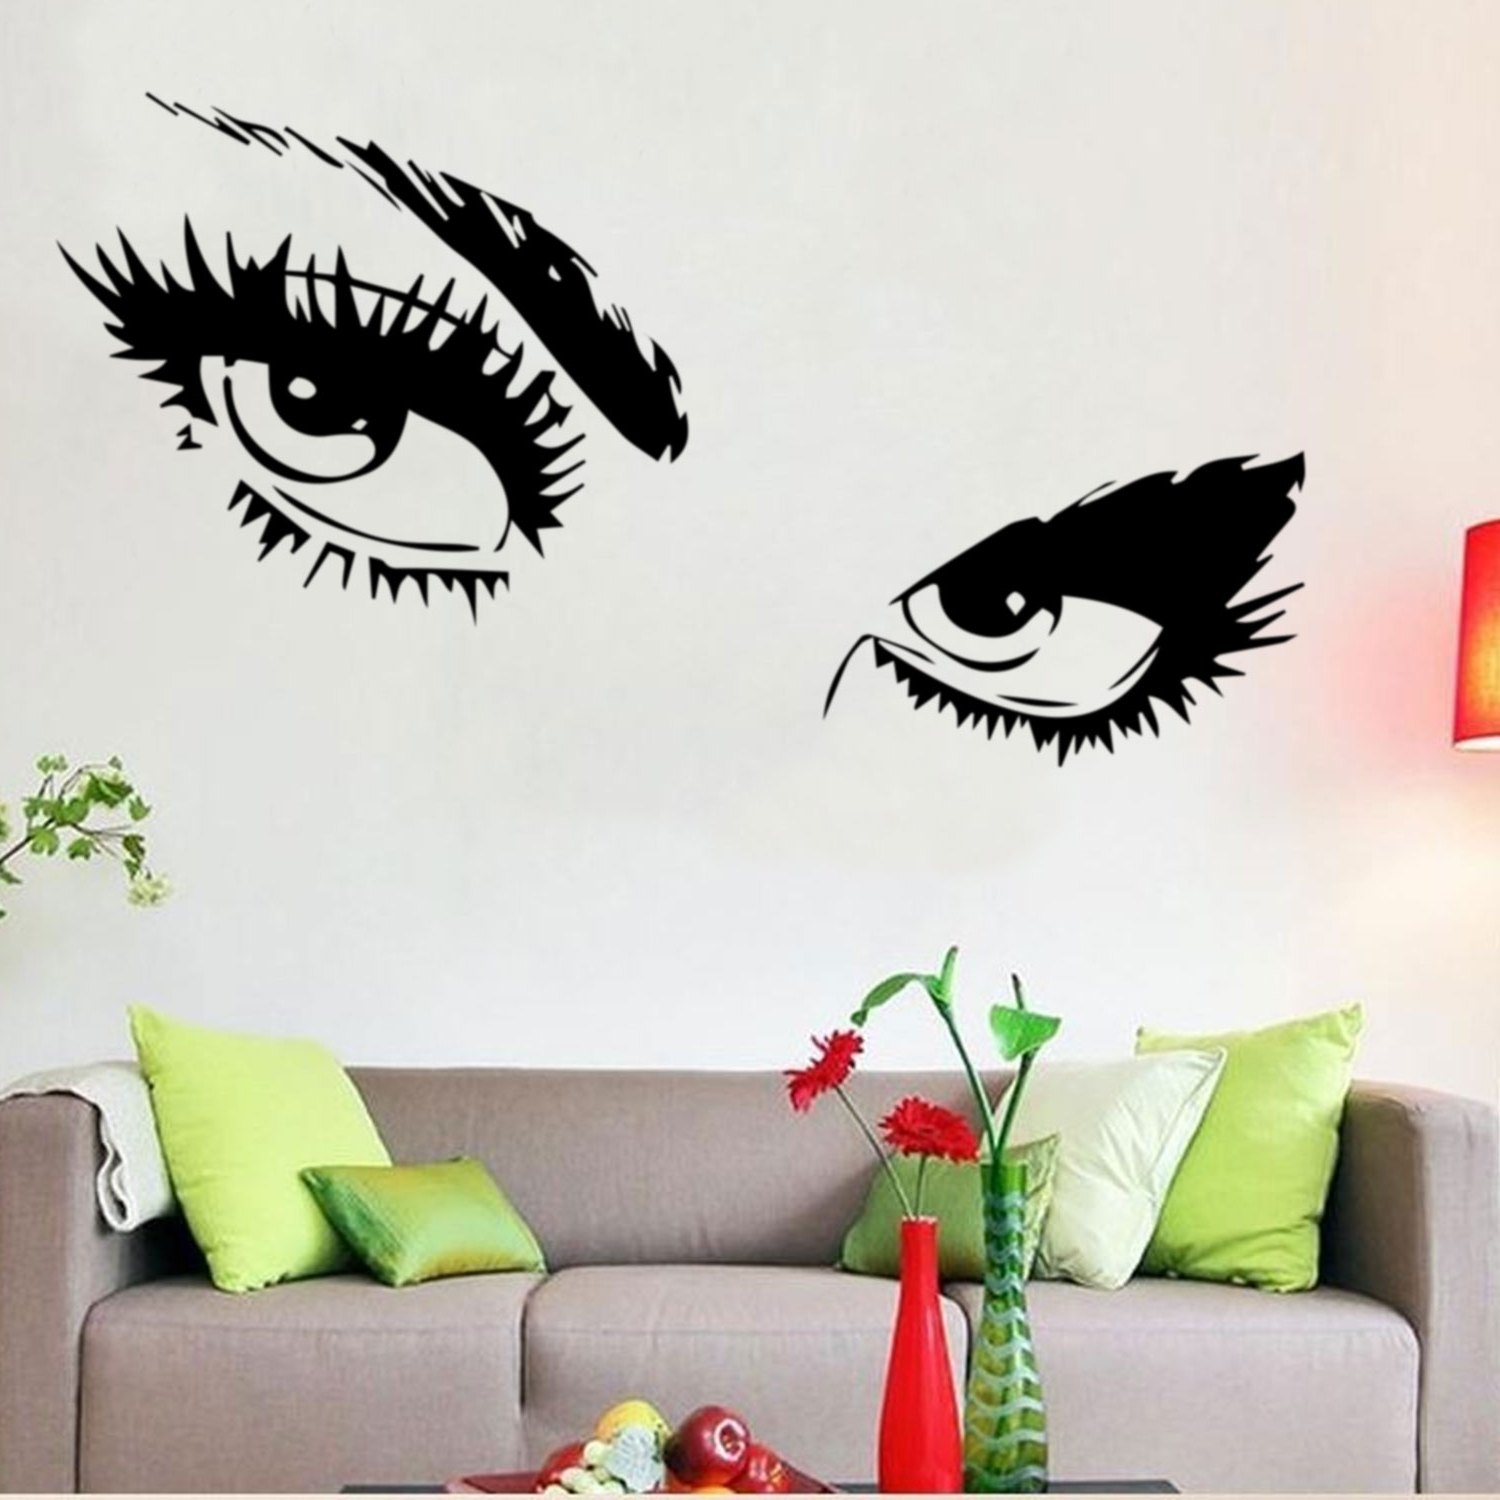 Wall Sticker Art Intended For 2017 Audrey Hepburn Sexy Eyes / Attractive Eye Wall Decal Art Decor (View 8 of 15)